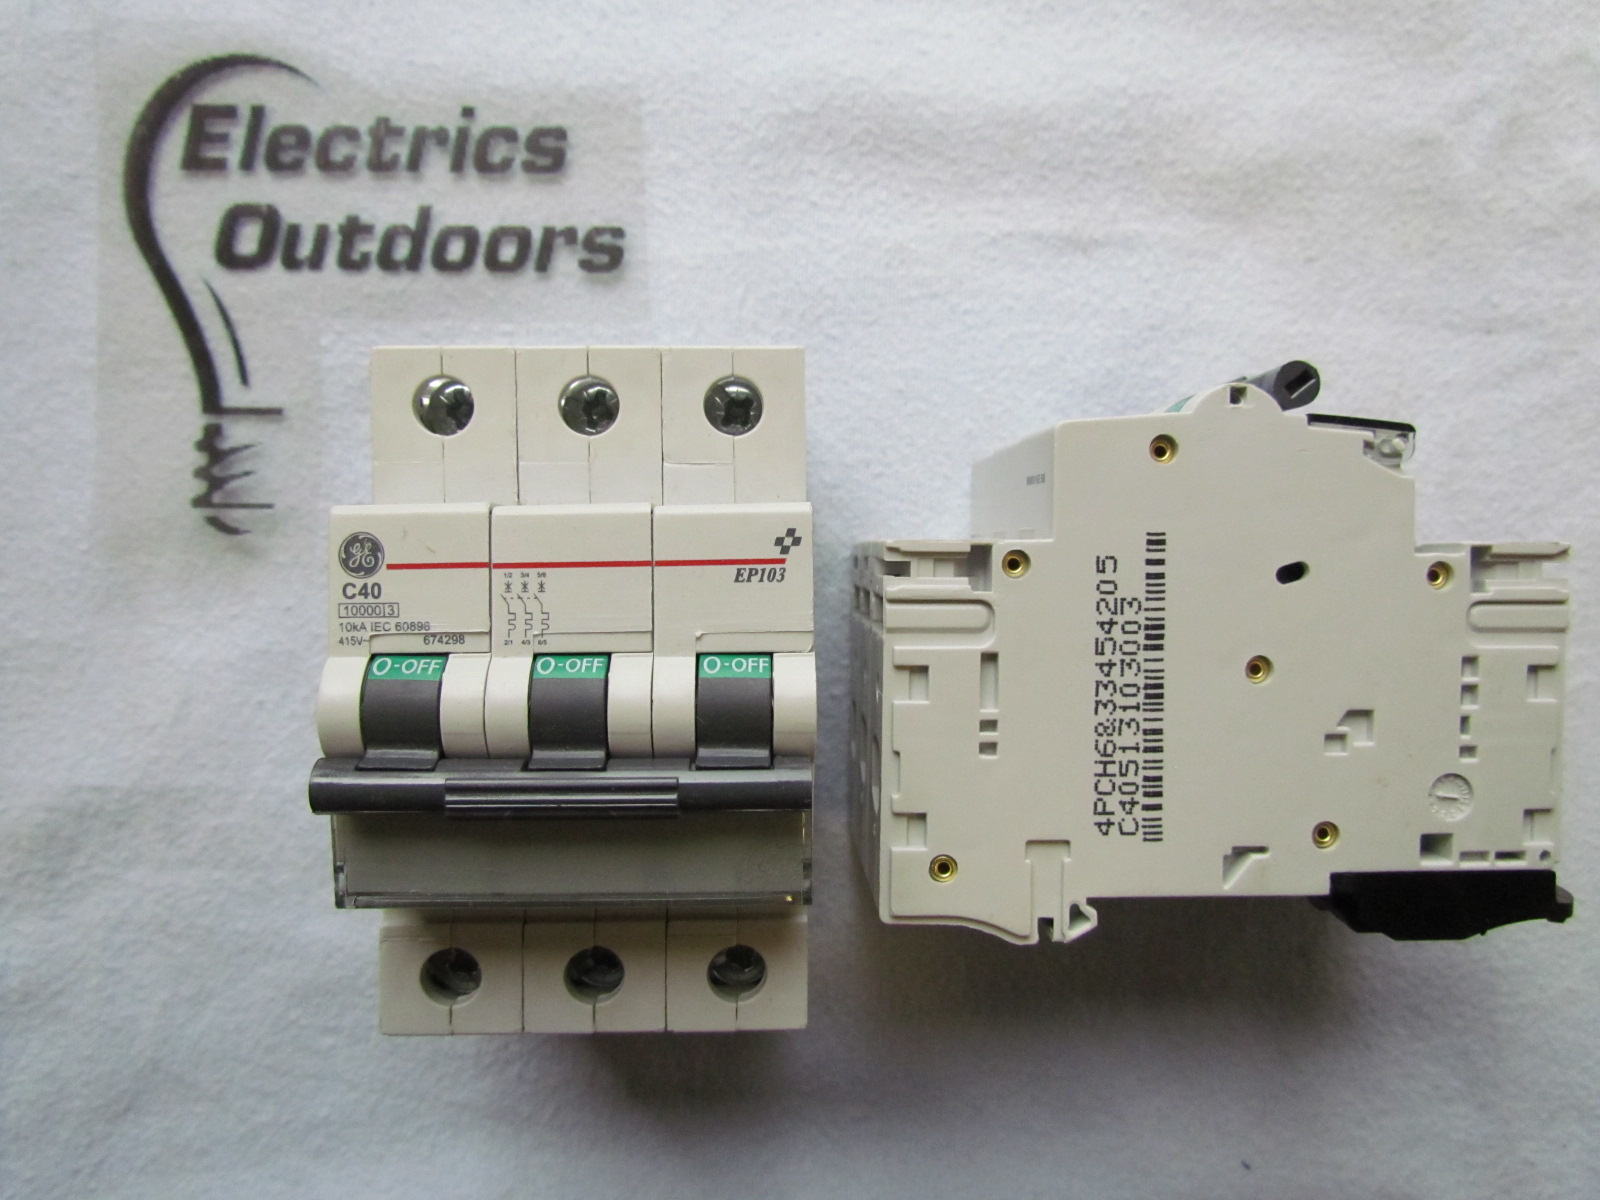 GENERAL ELECTRIC 40 AMP TYPE C TRIPLE 3 POLE MCB CIRCUIT BREAKER EP103 674298 A